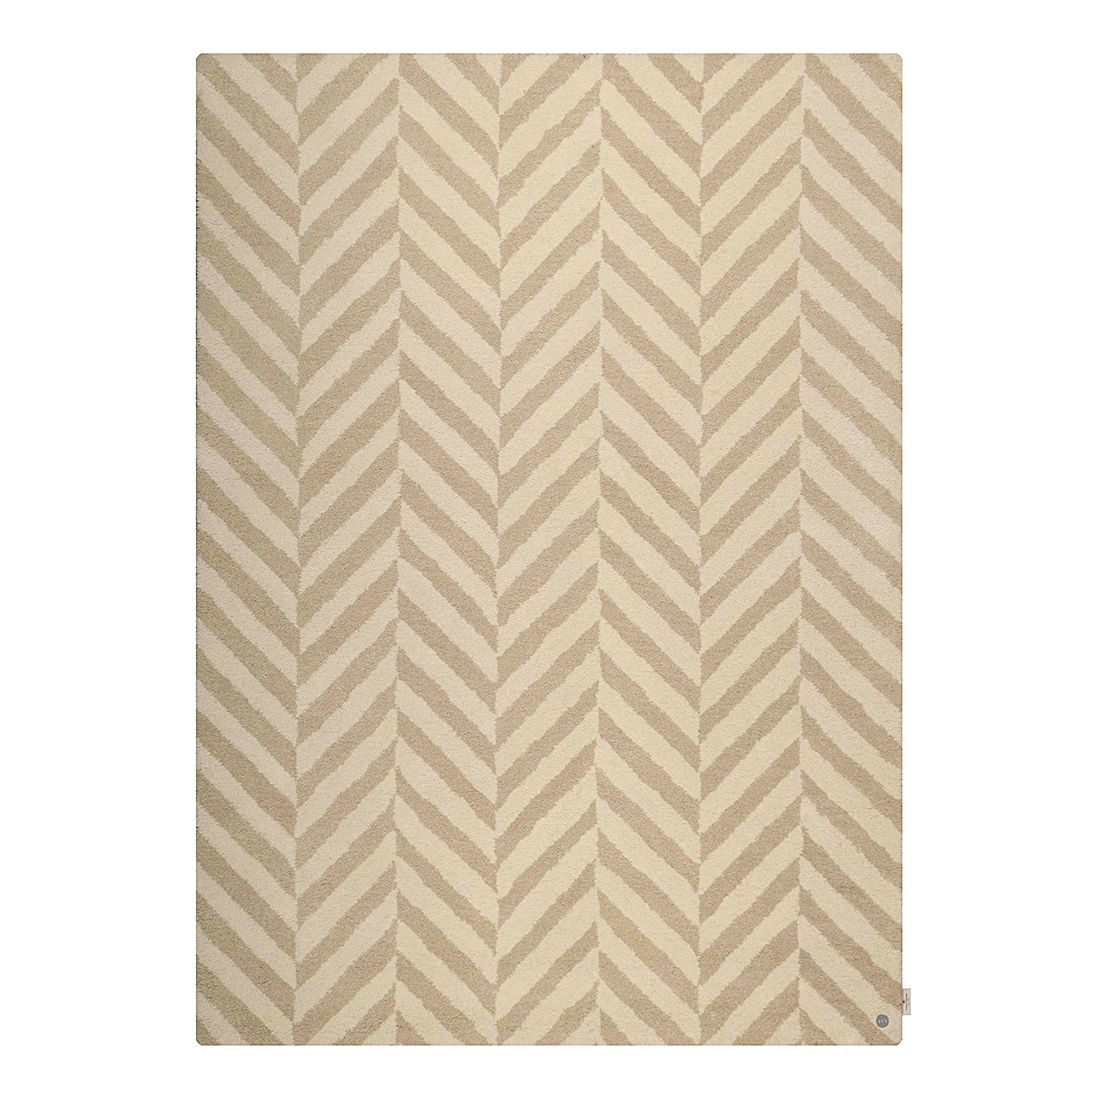 Tapijt Country Zigzag - beige - maat: 140x200cm, Tom Tailor